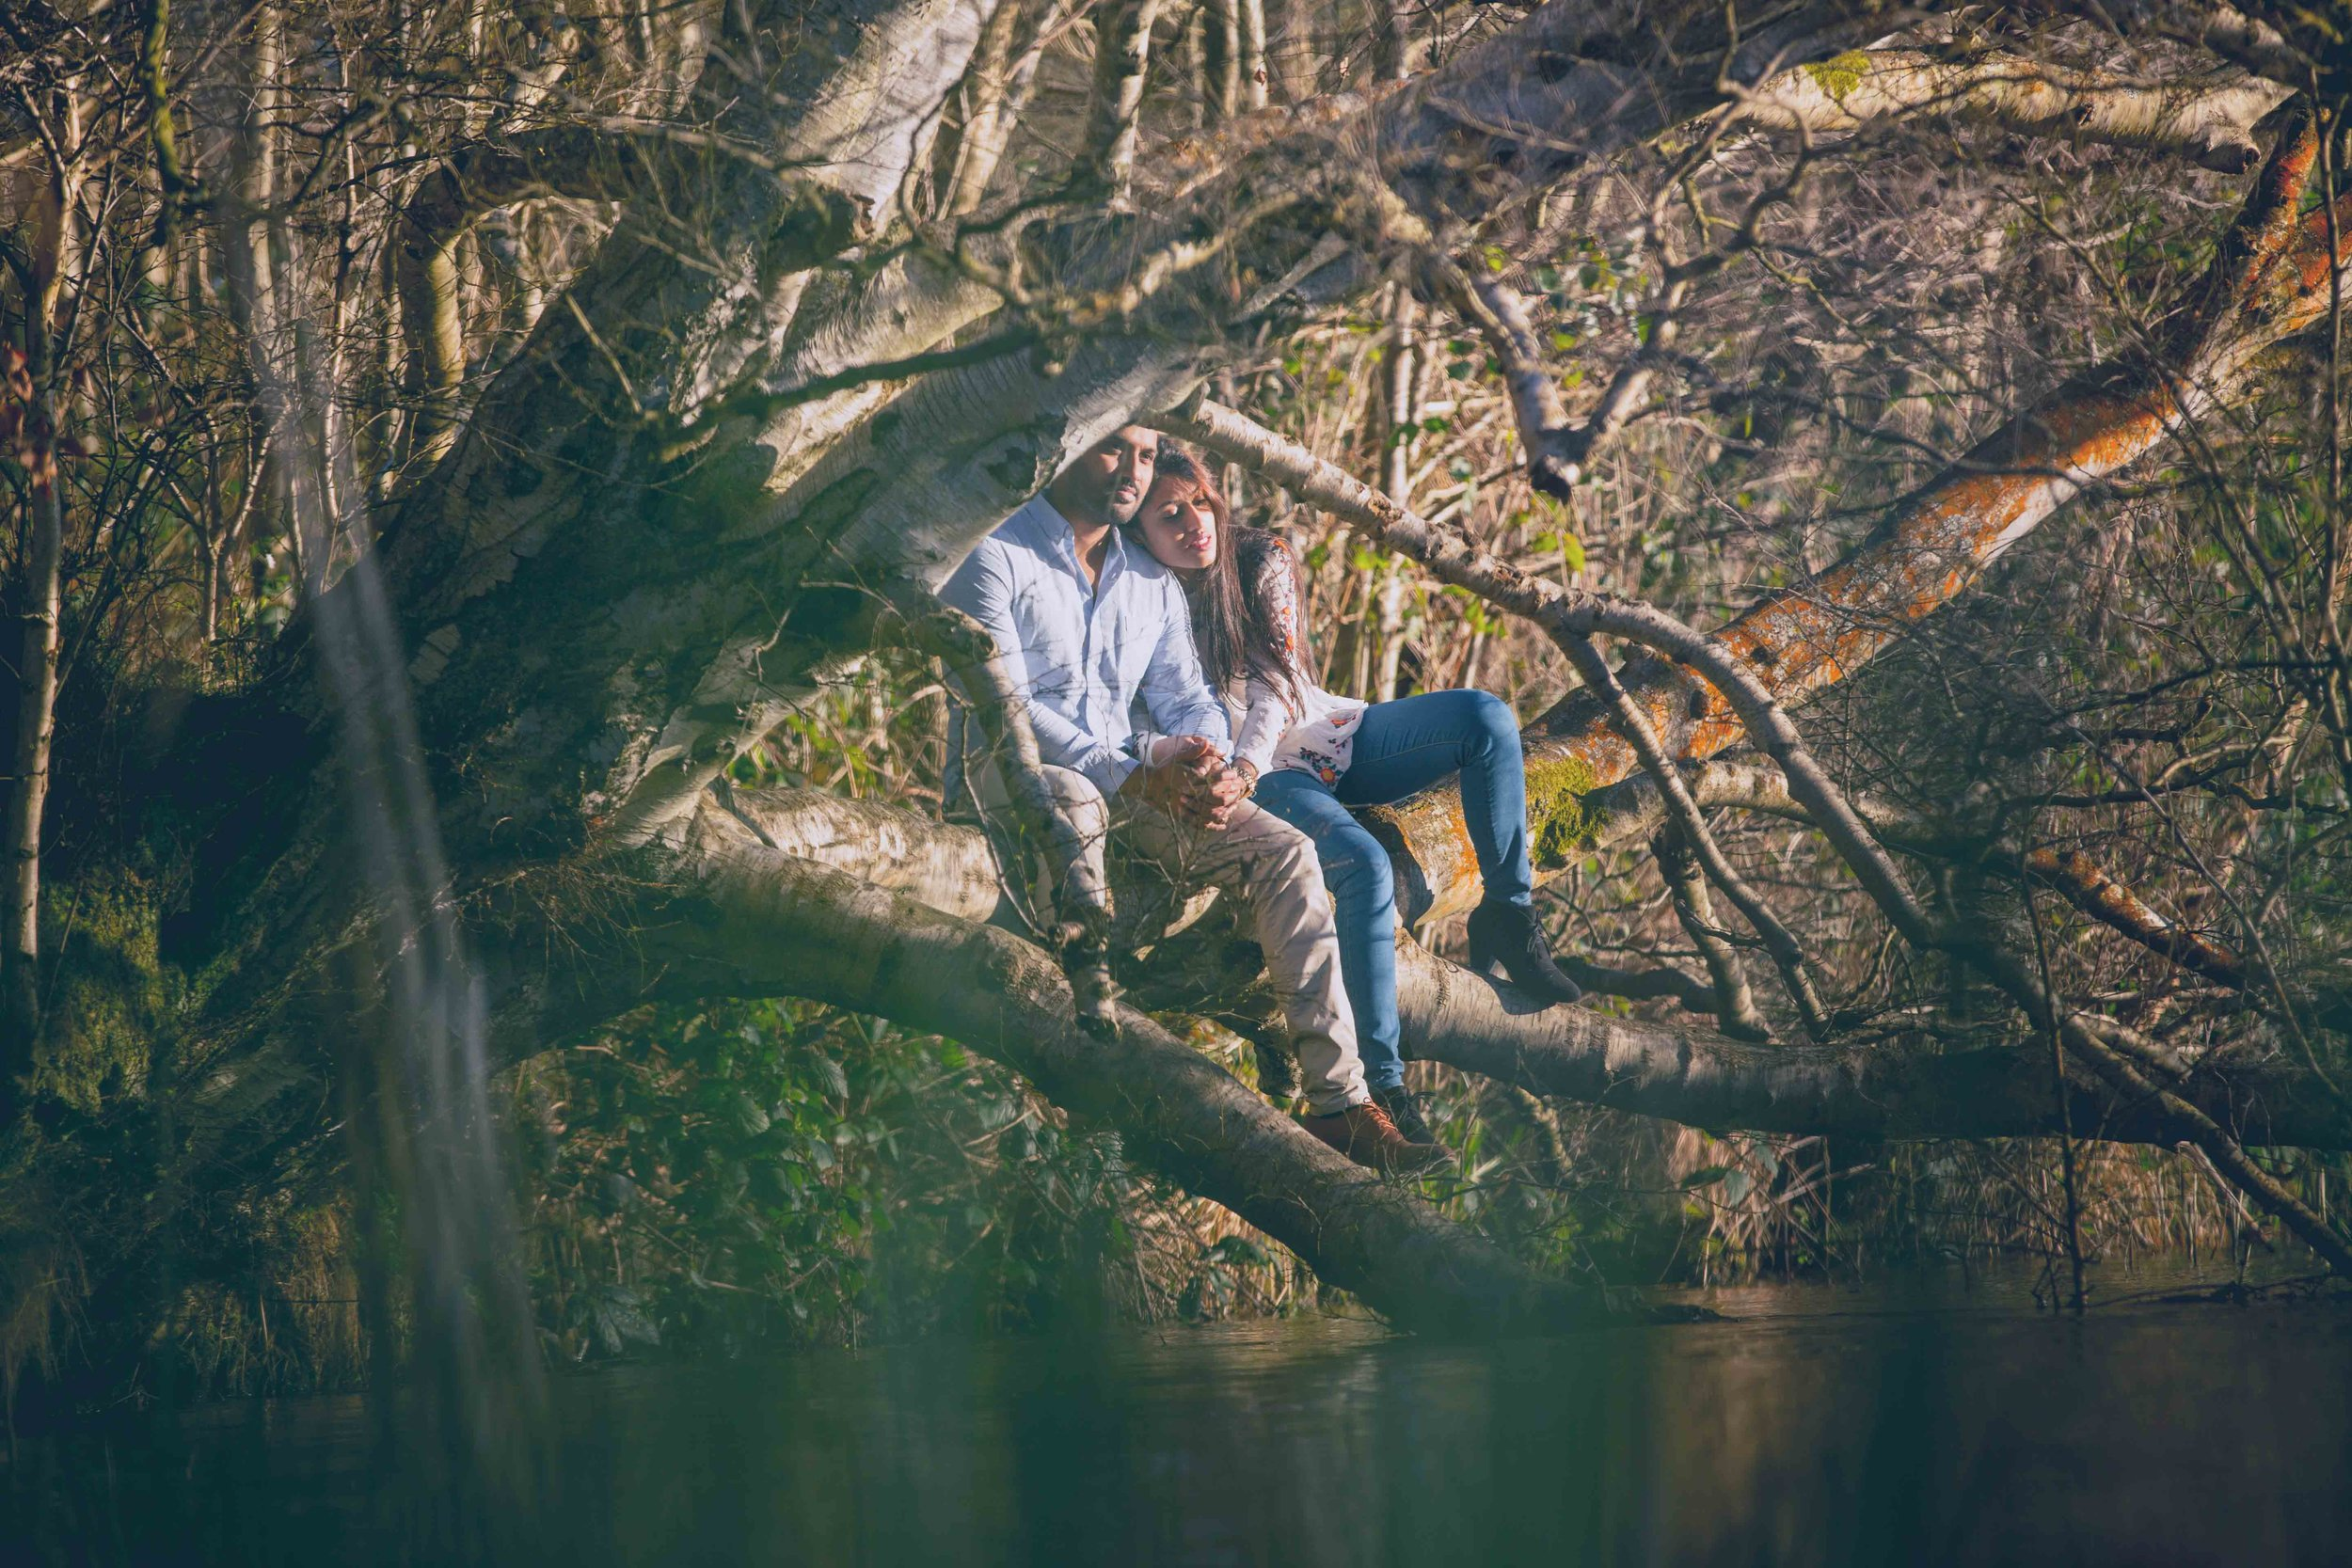 Virginia-waters-windsor-pre-wedding-engagement-shoot-female-asian-wedding-photographer-natalia-smith-photography-22.jpg